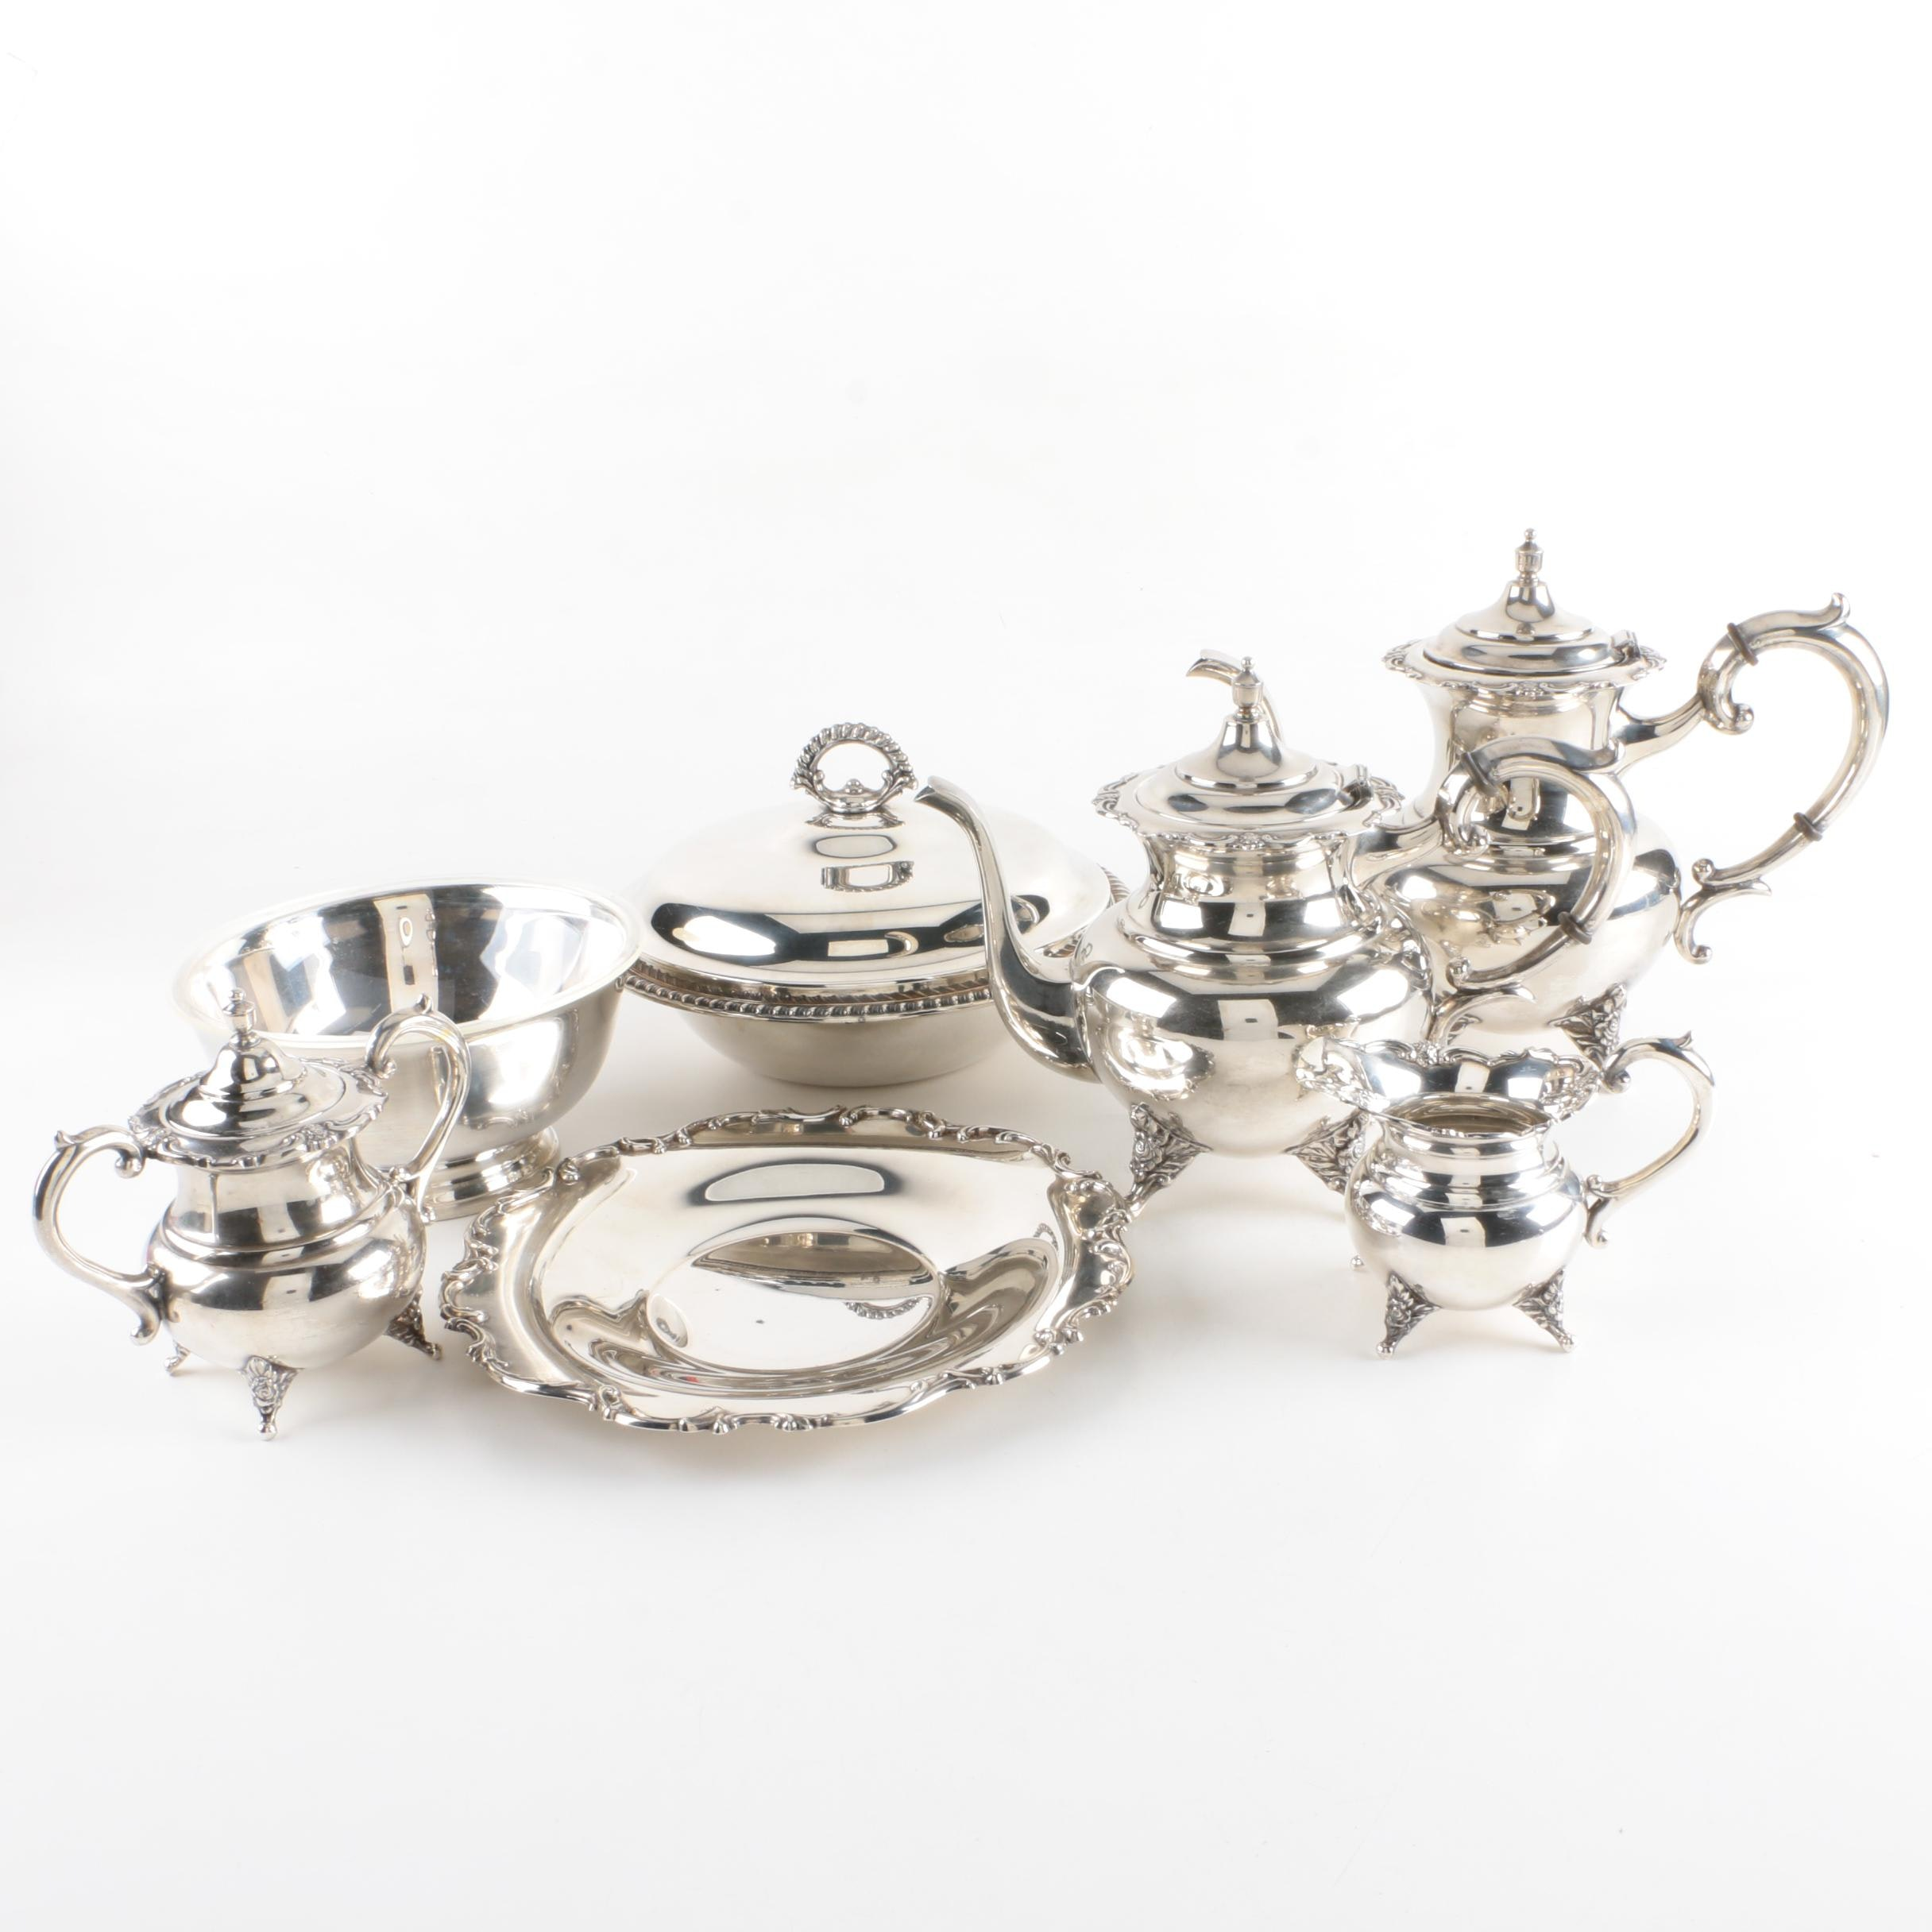 Silver Plate Serveware Featuring Gorham and International Silver Co.